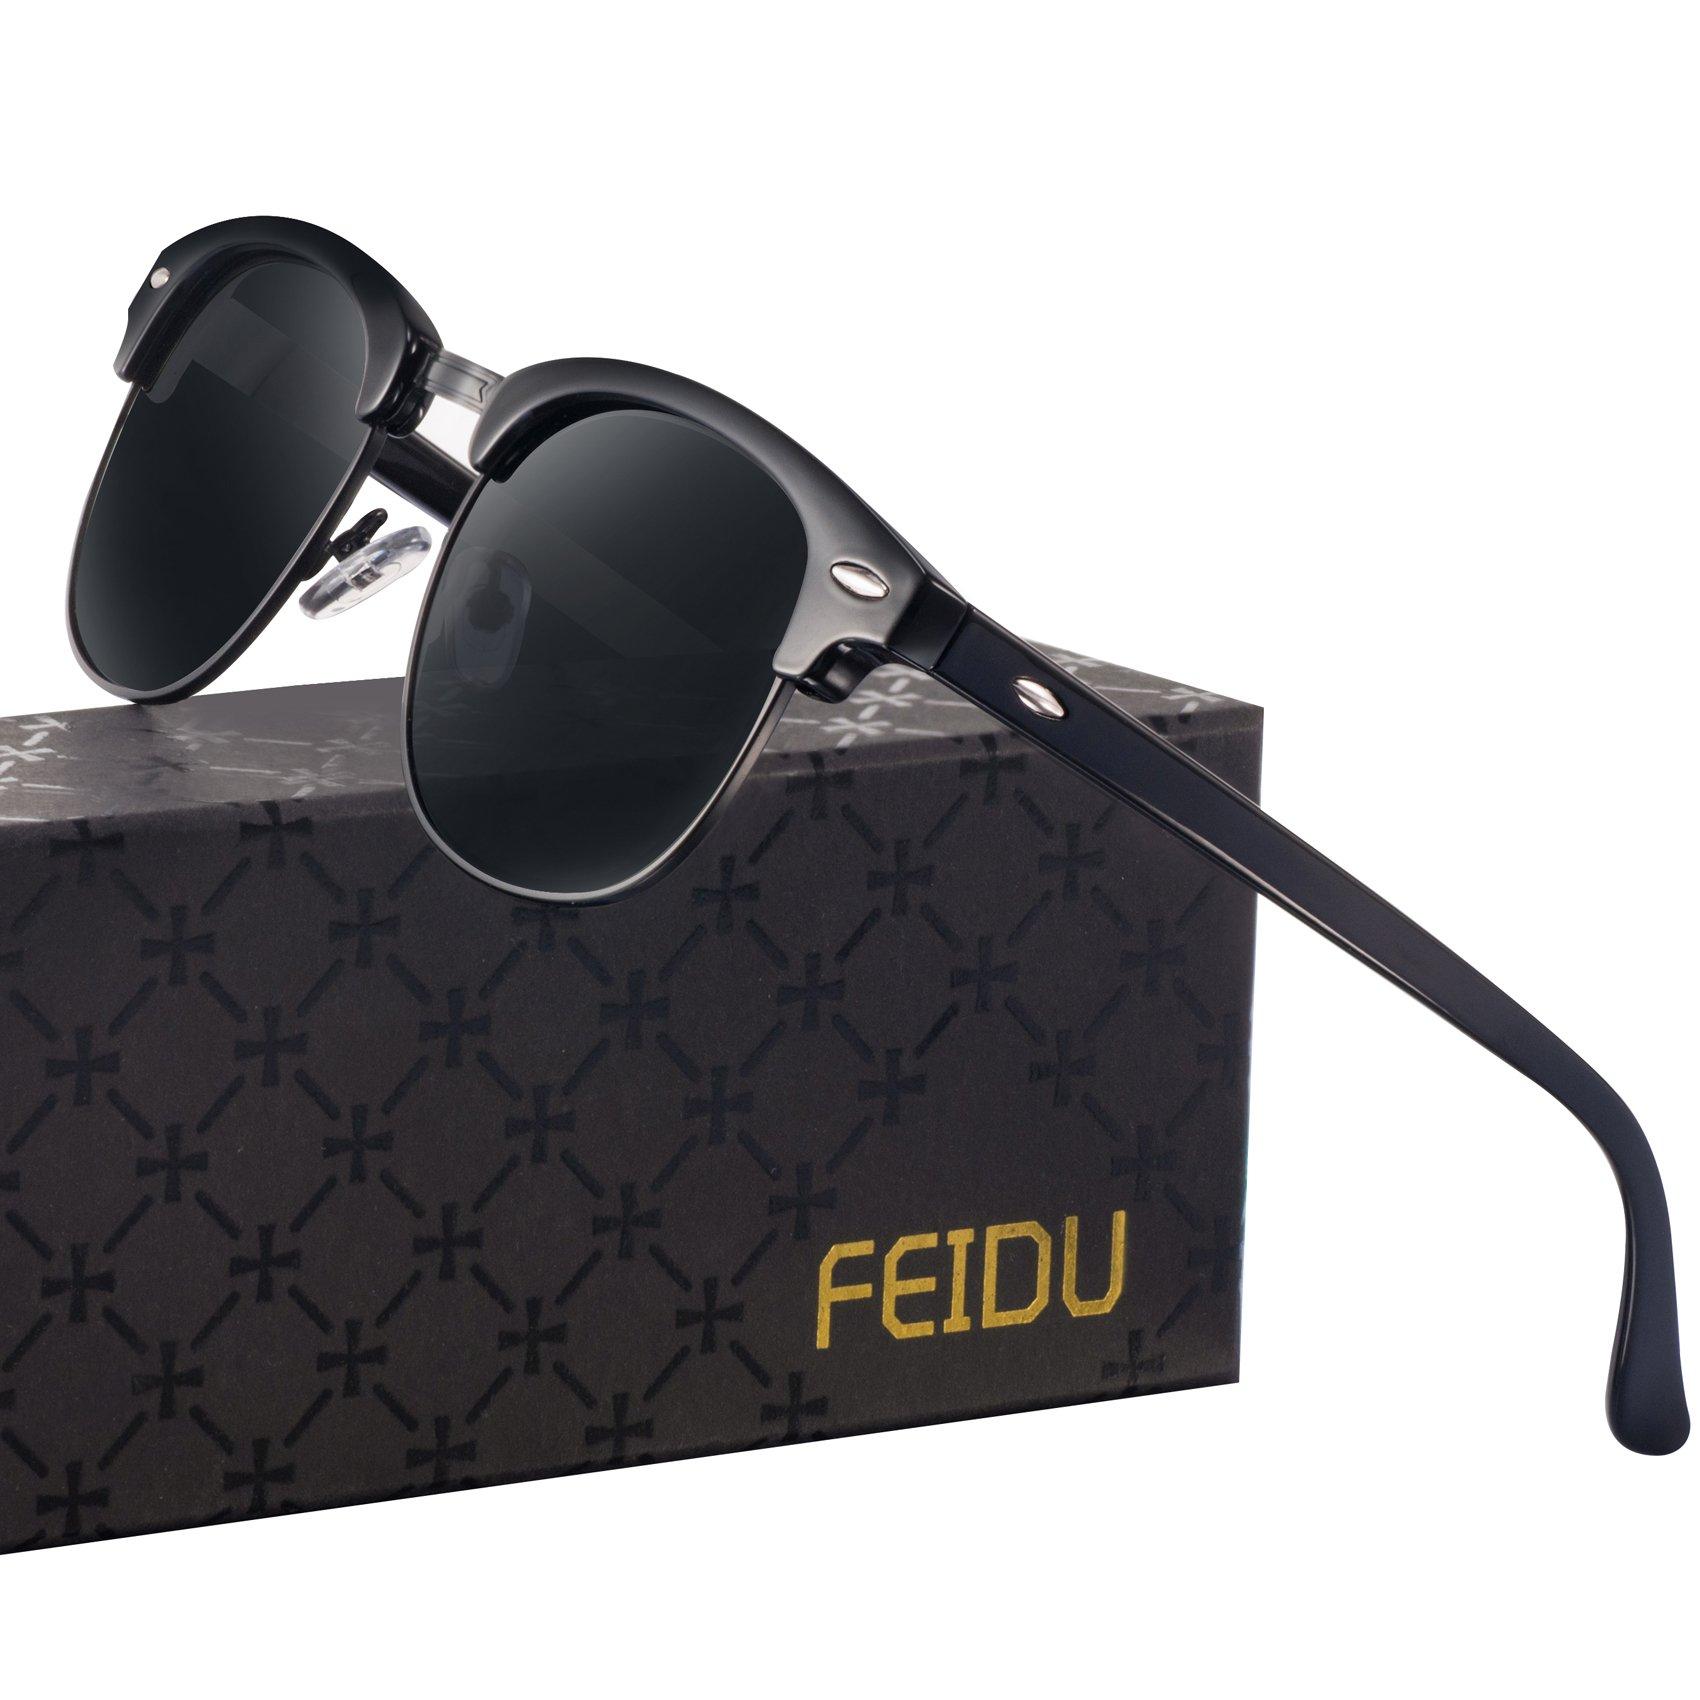 Polarized Mens Sunglasses for Men - FEIDU Polarized Sunglasses Mens Sunglasses FD 3030 (ALL/BLACK, 2.08) by FEIDU